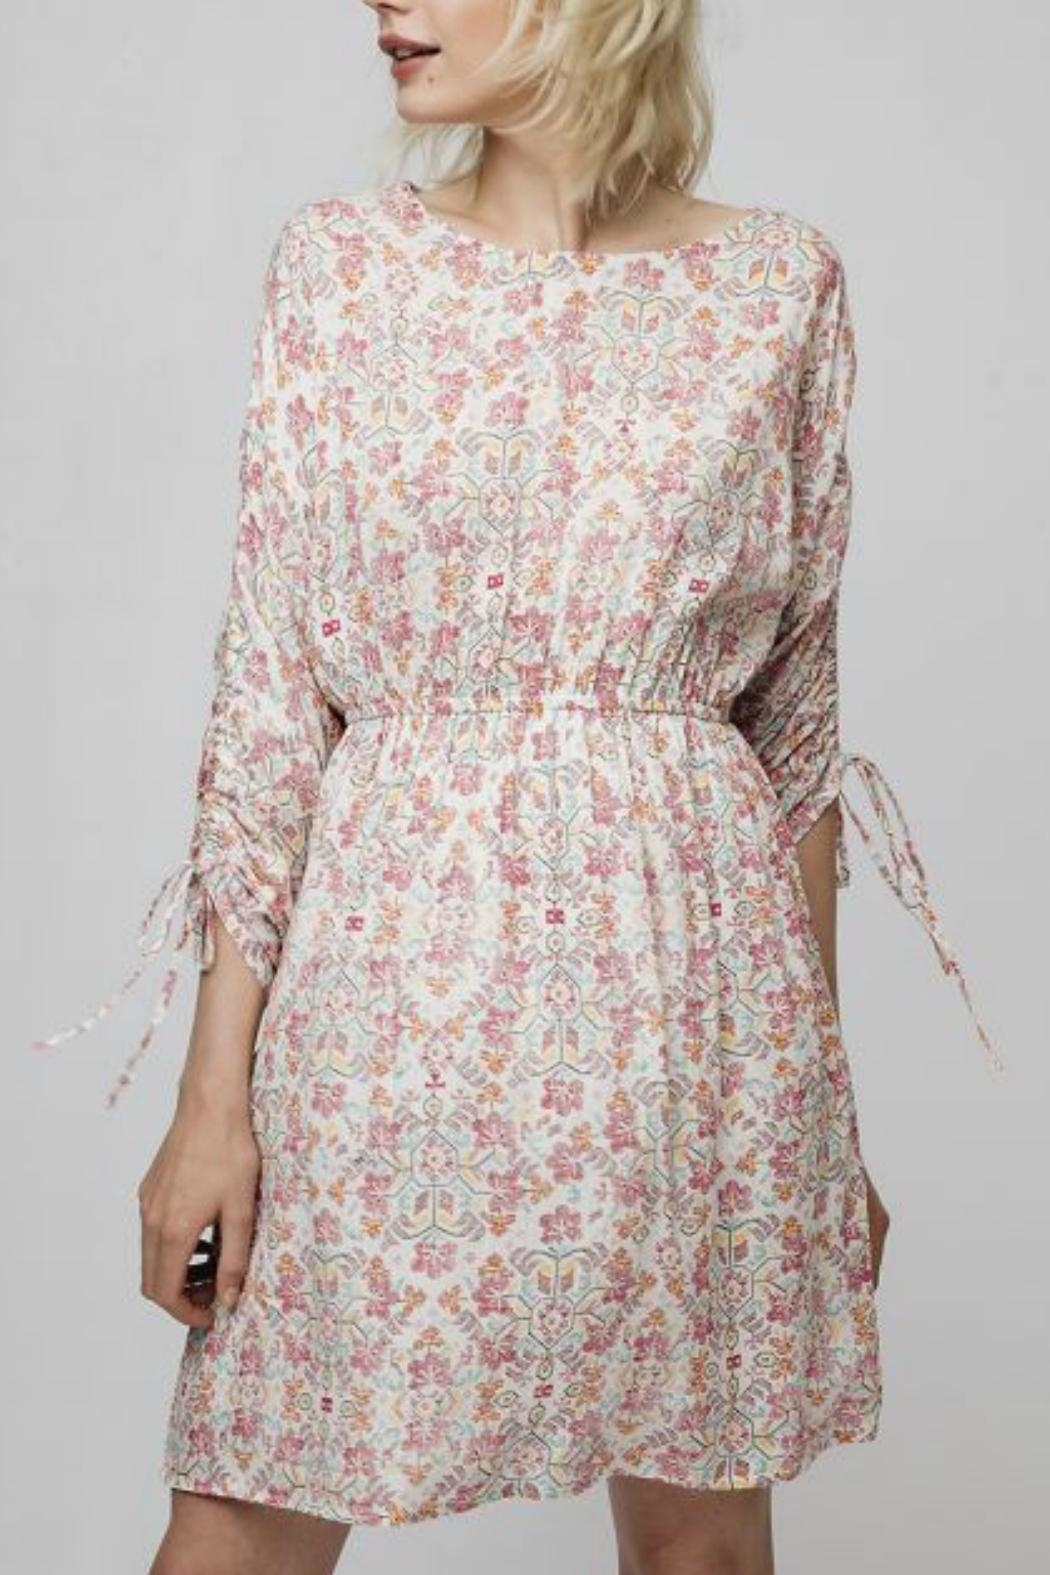 Compania Fantastica Digital Floral Dress - Side Cropped Image